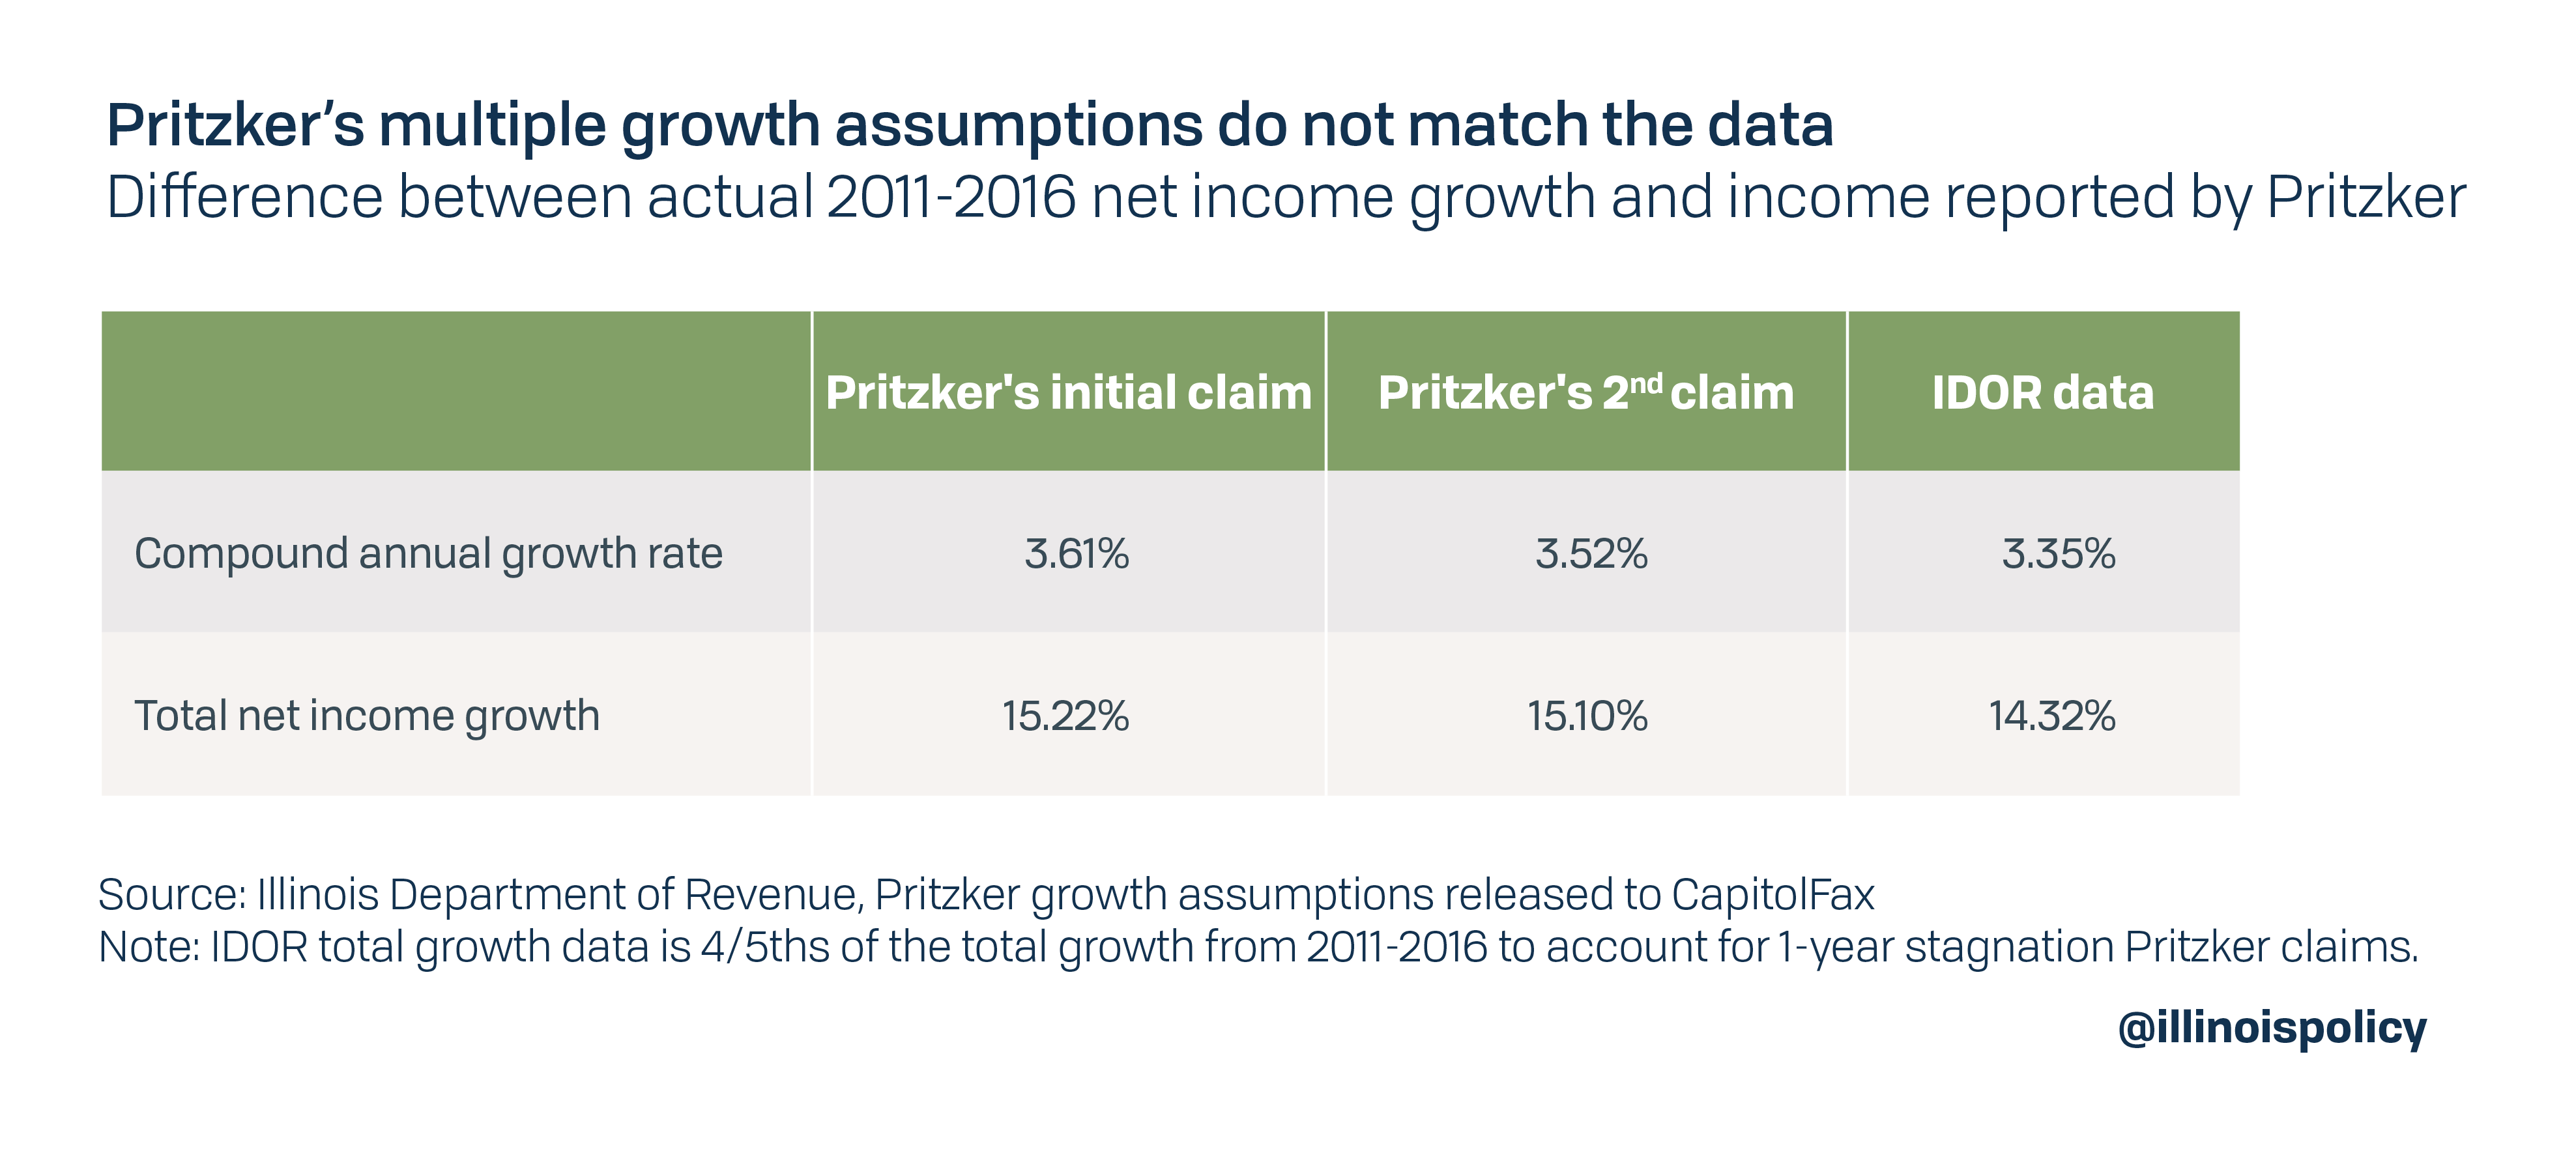 Pritzker's multiple growth assumptions do not match the data